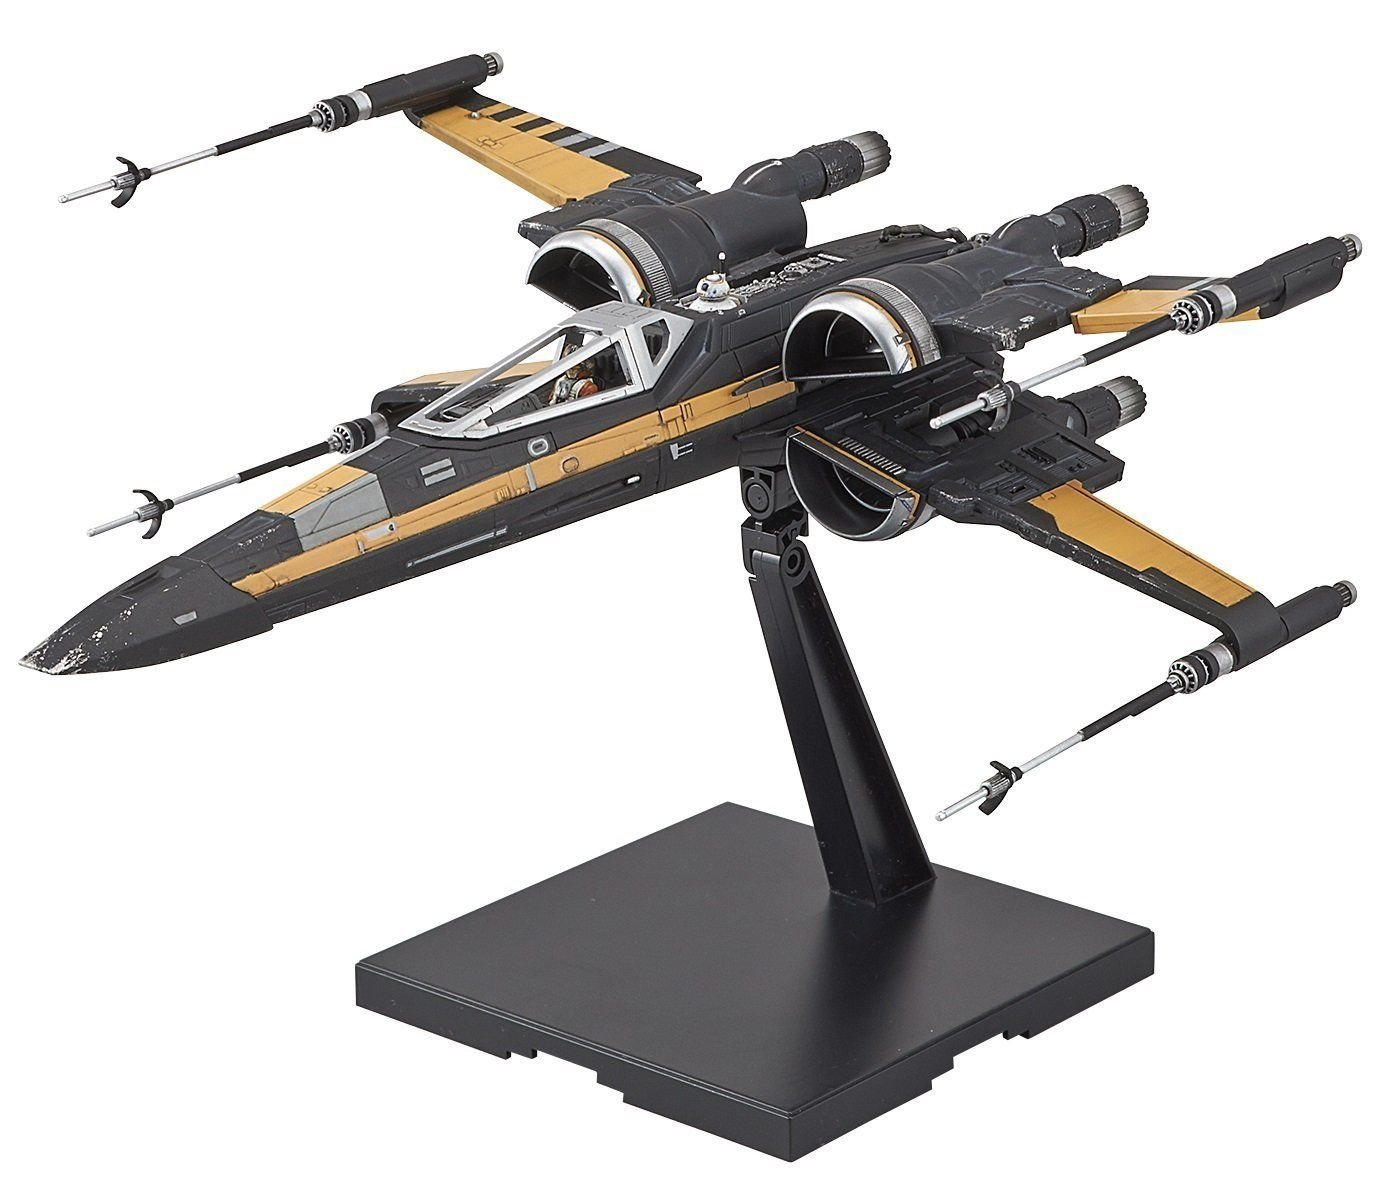 Amazon com: Star Wars Model Kit 1/72 POE'S BOOSTED X-WING